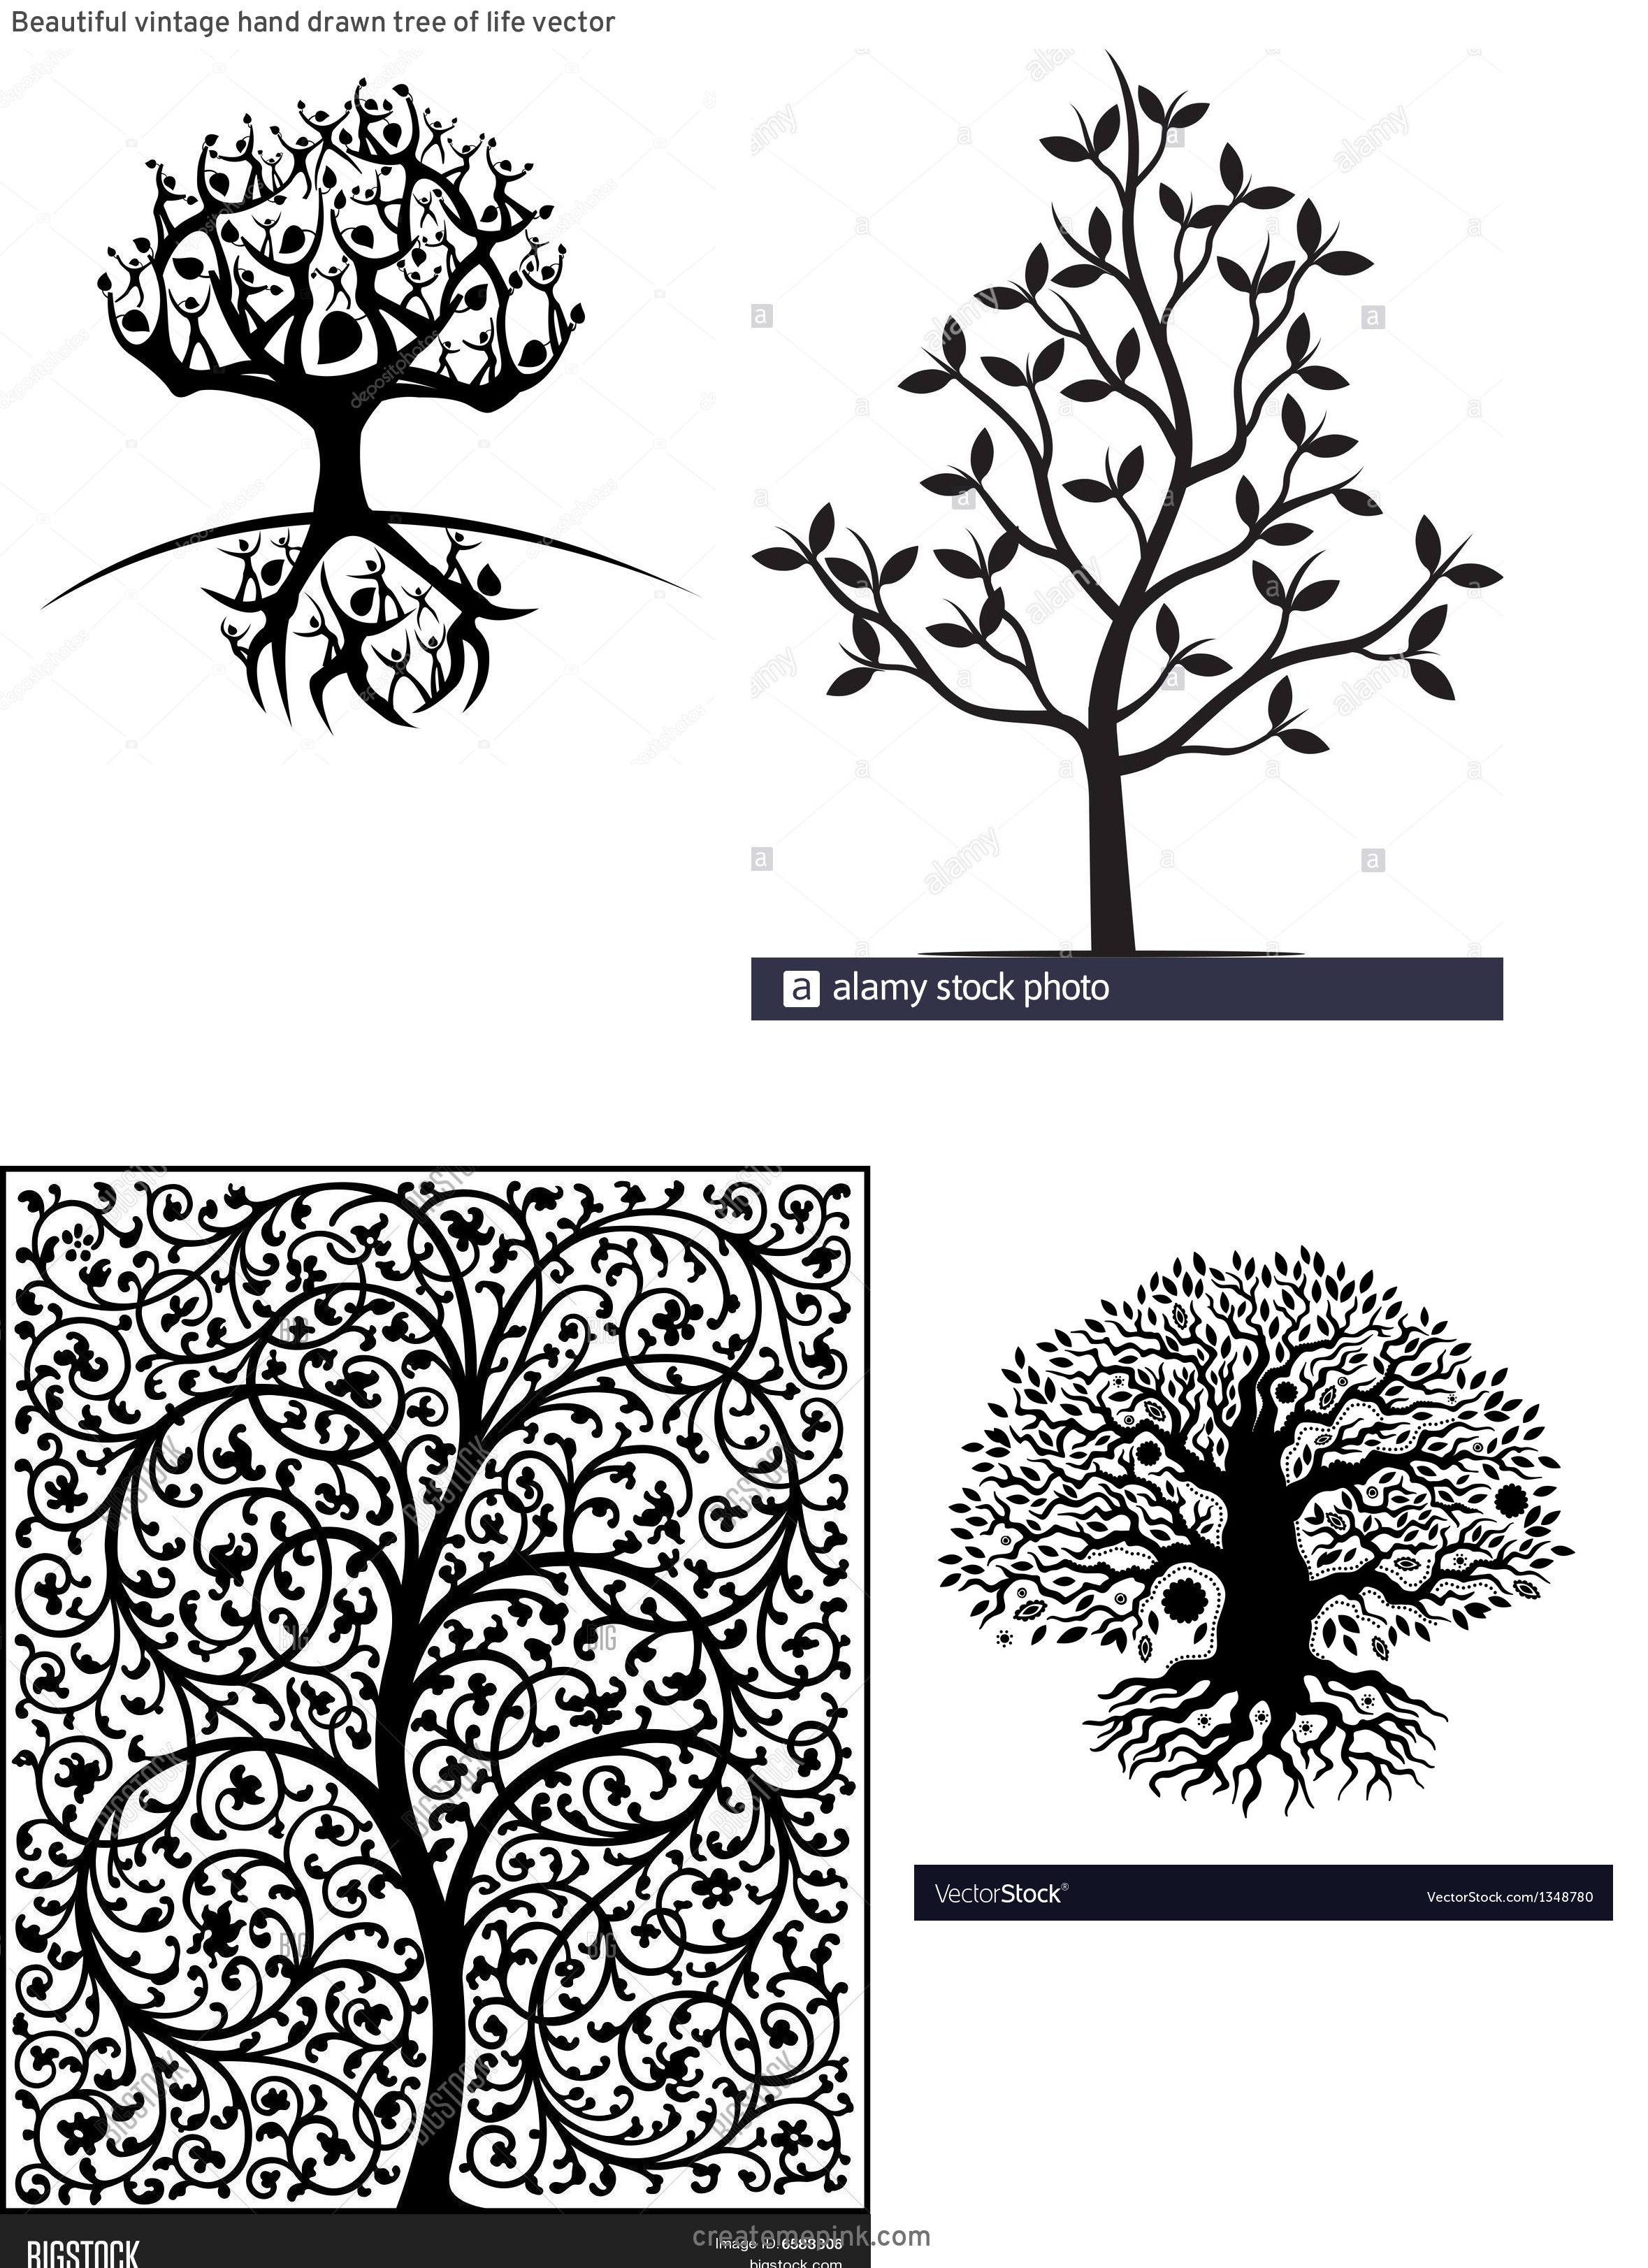 Vector Images Black Tree Of Life: Beautiful Vintage Hand Drawn Tree Of Life Vector